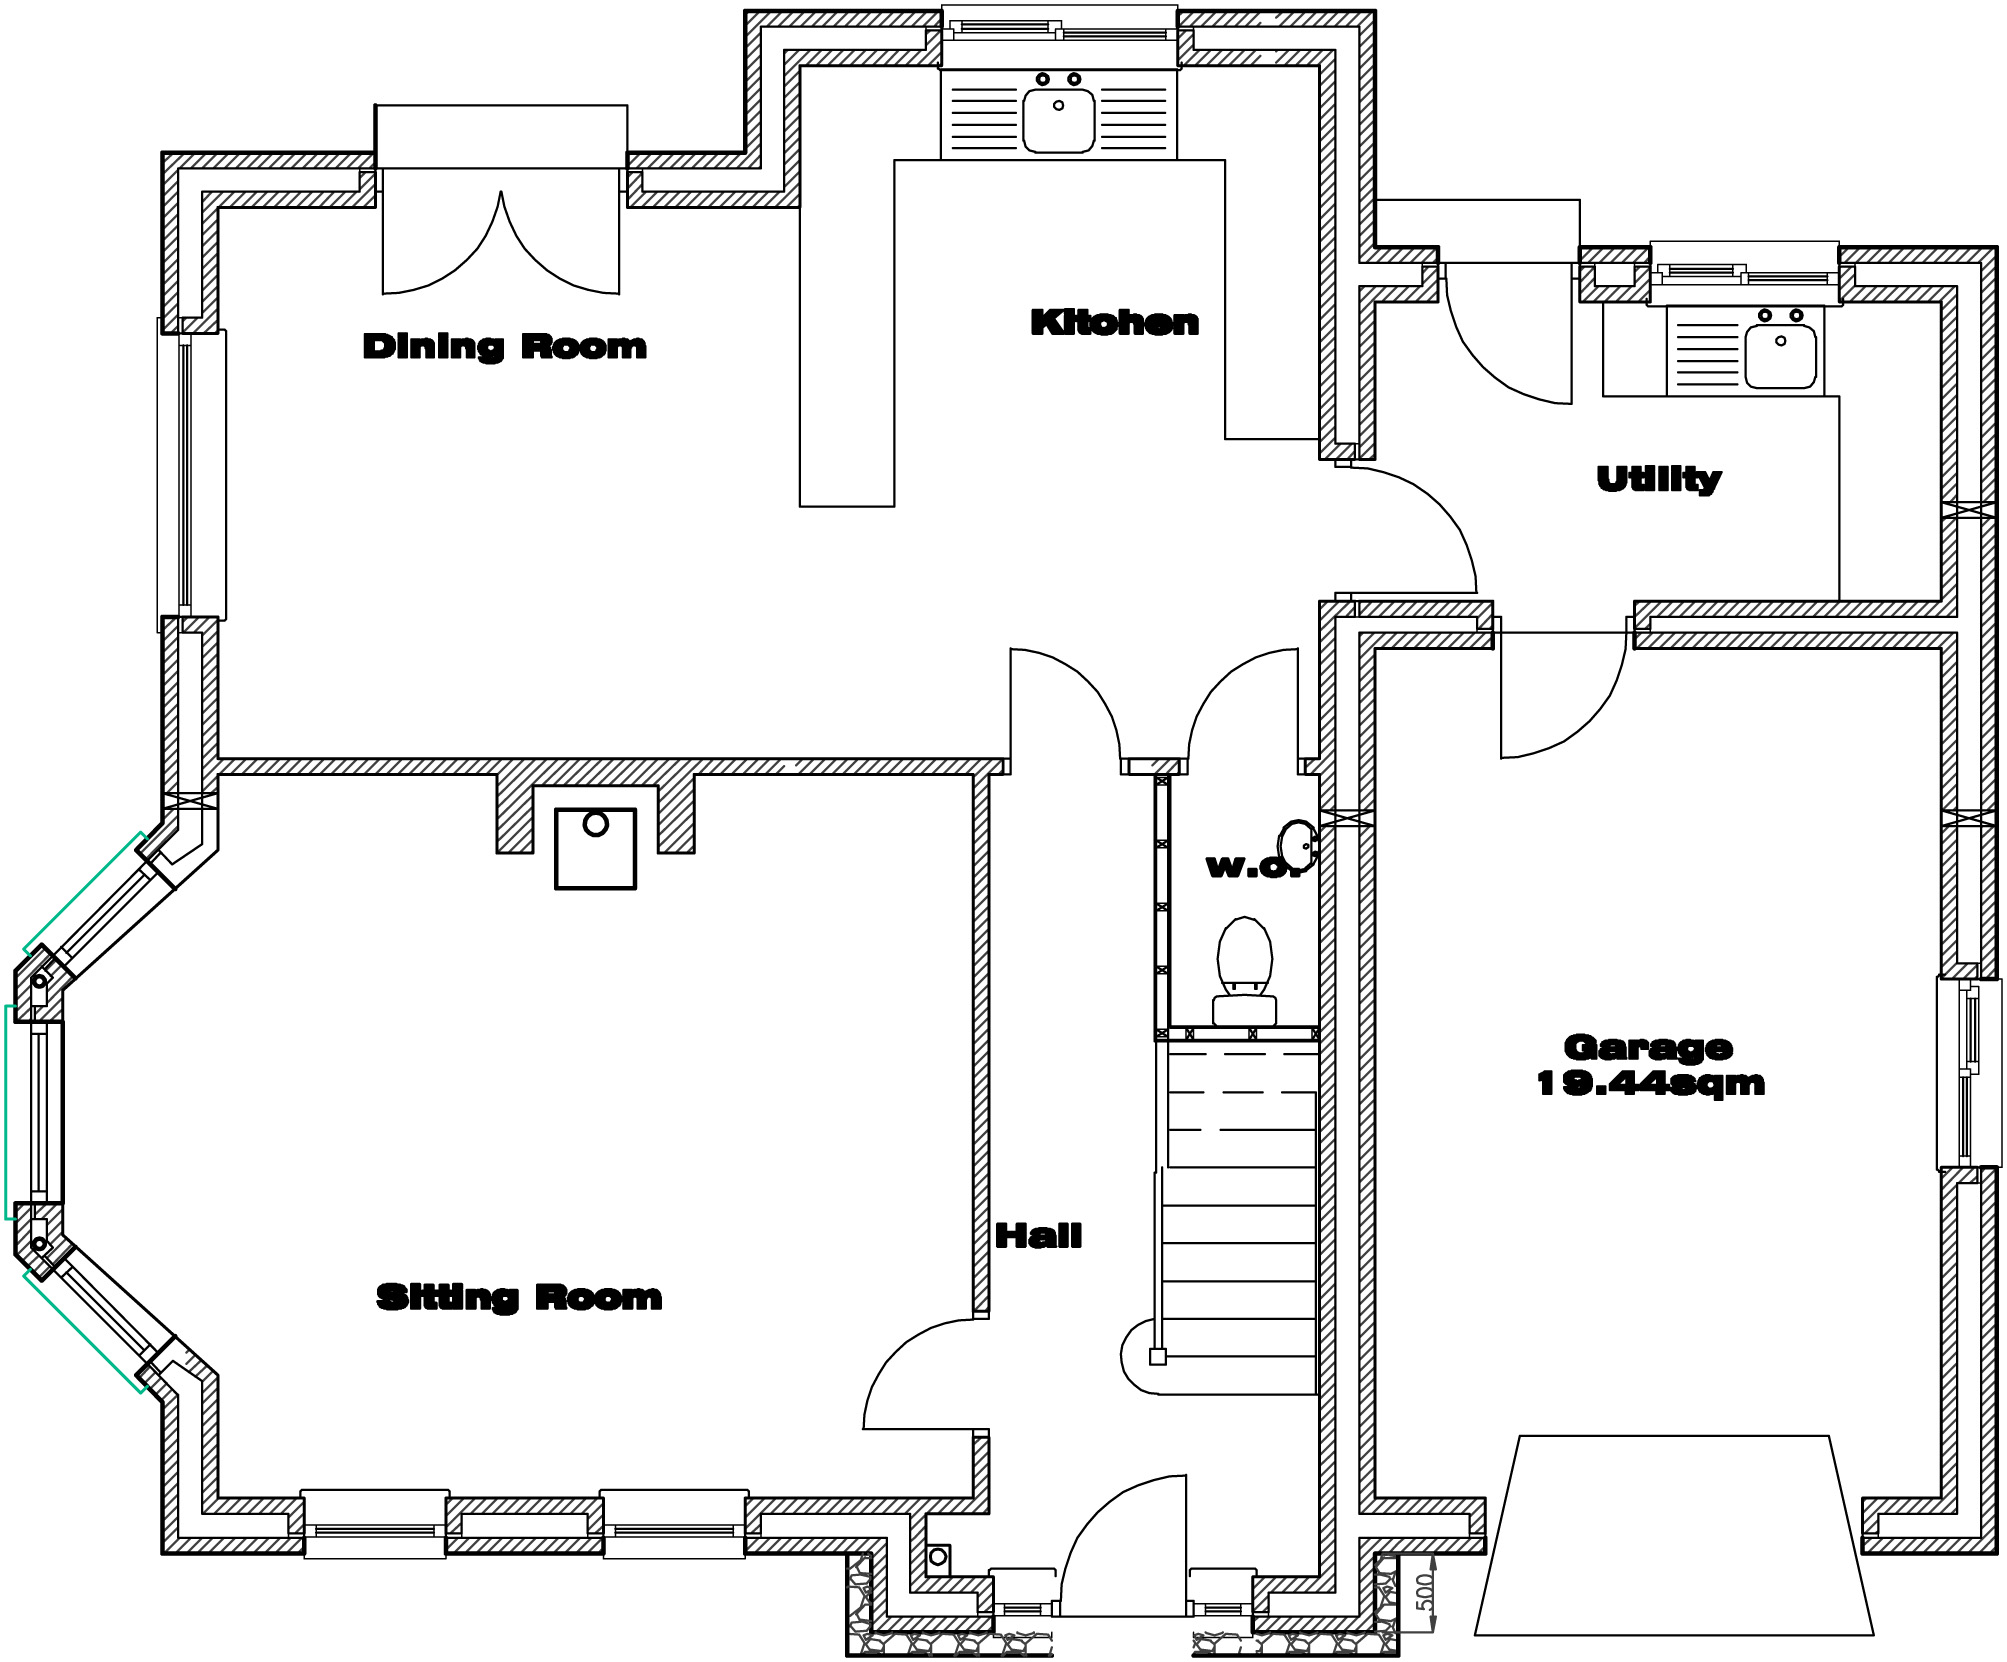 House Type C Ground Floor